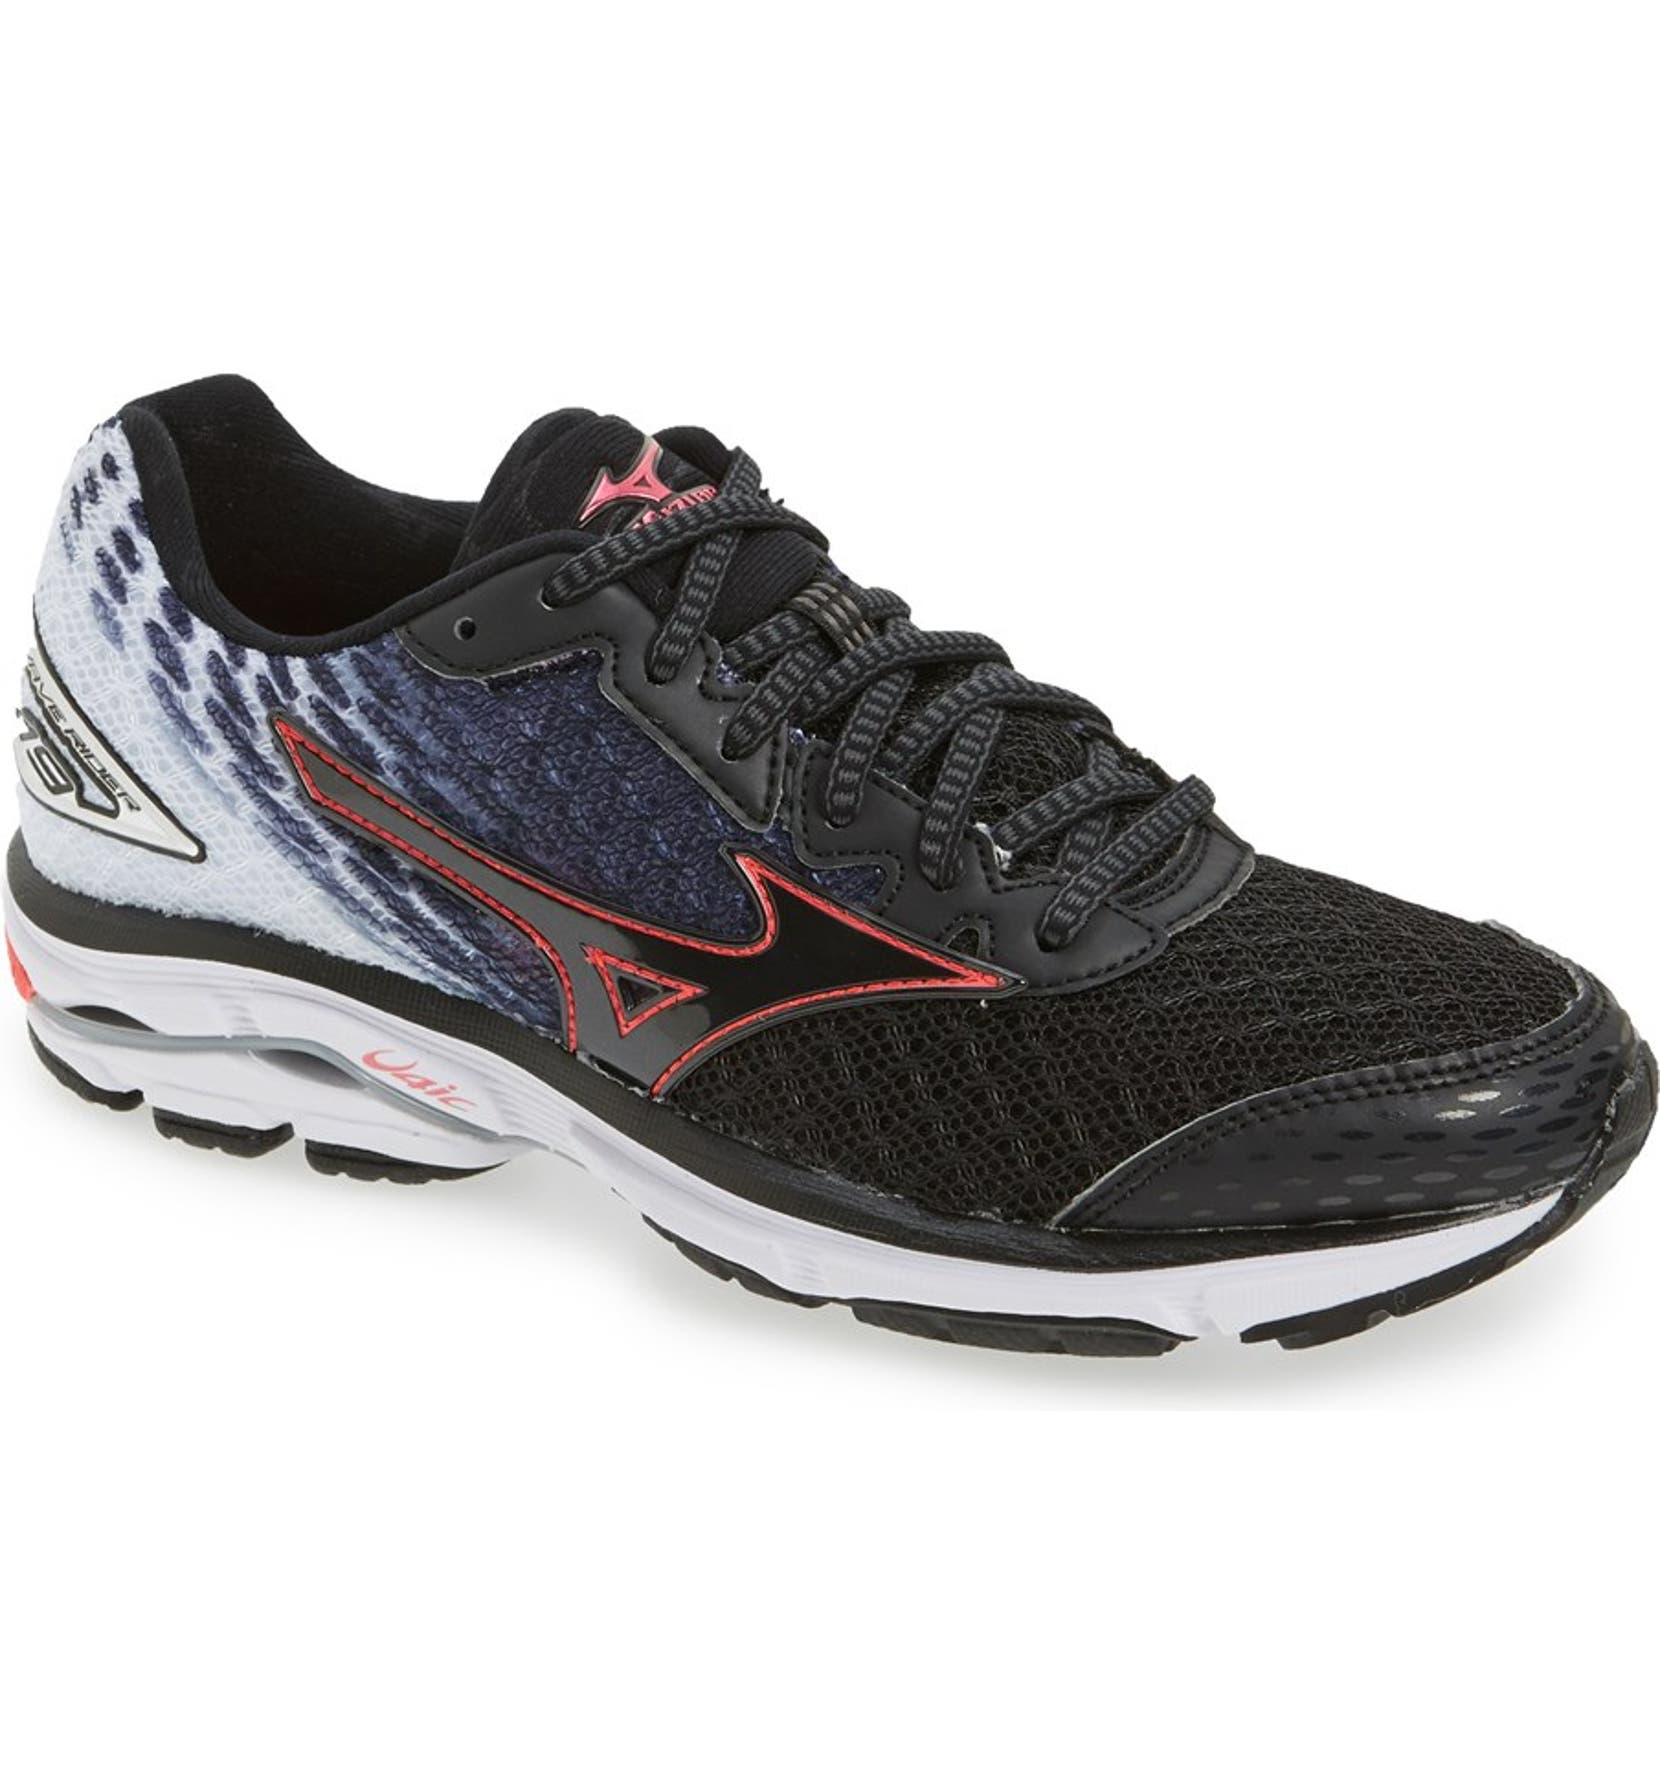 competitive price 4ffe5 5eba2 'Wave Rider 19' Running Shoe